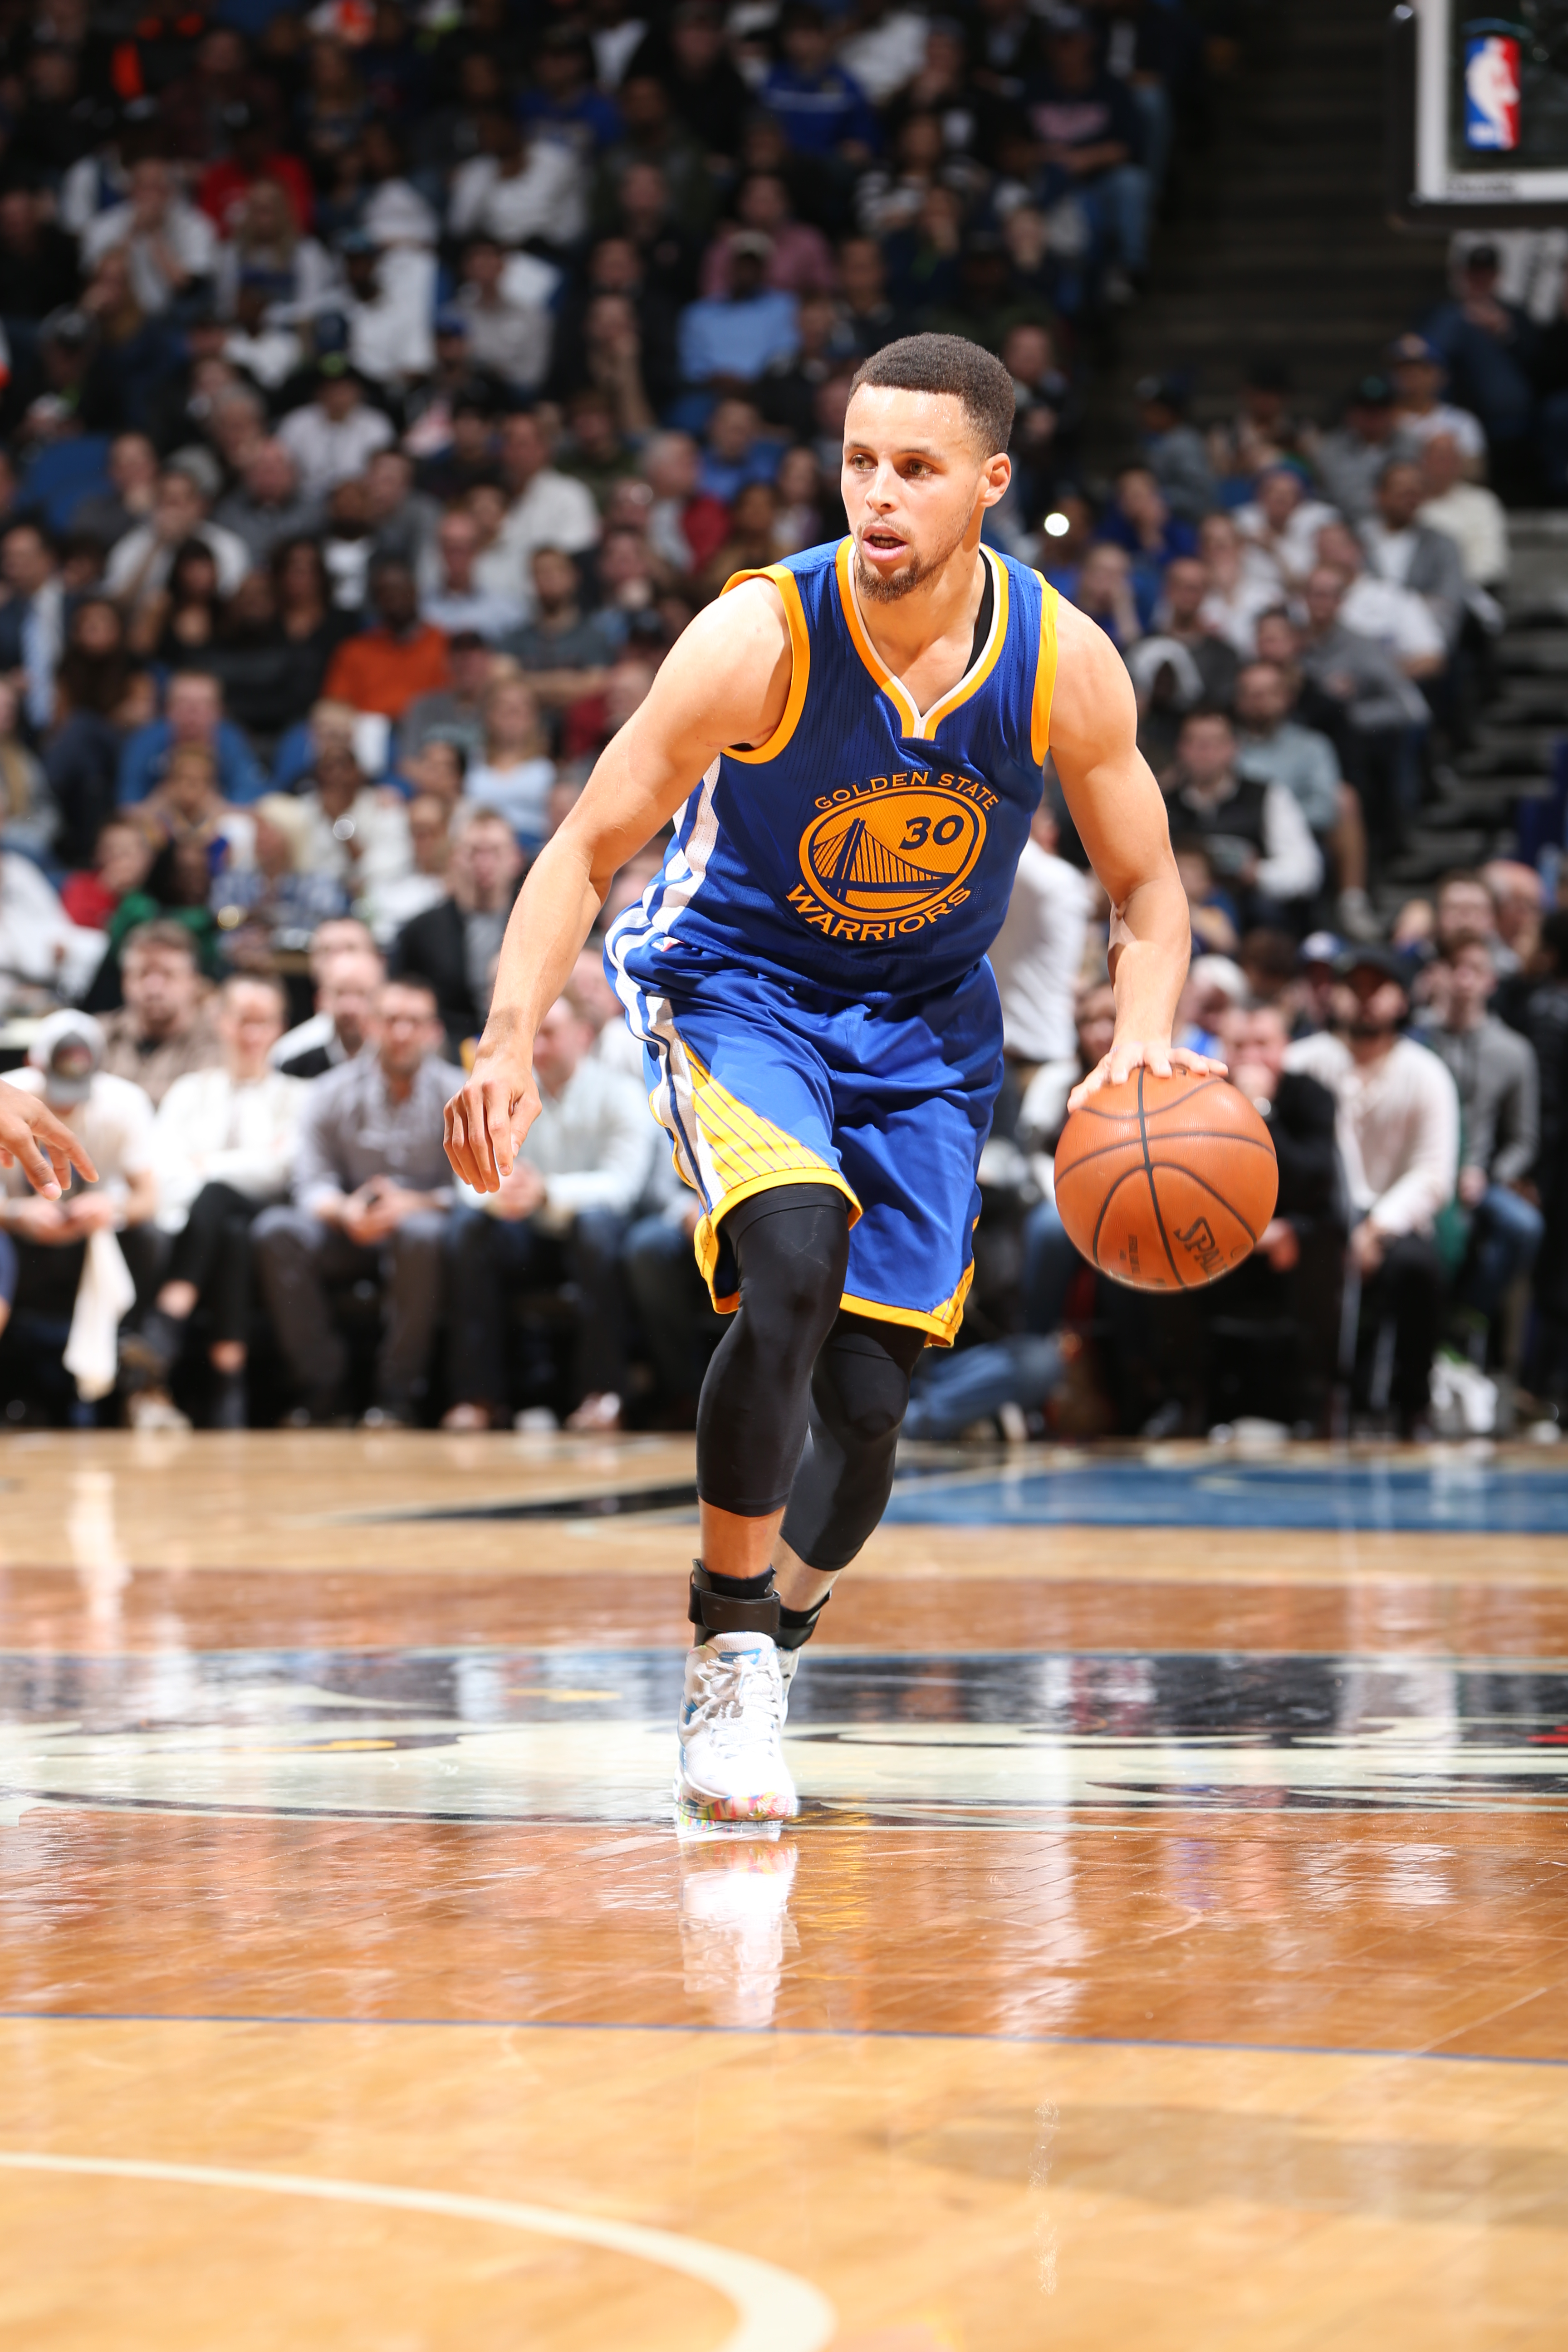 MINNEAPOLIS, MN -  MARCH 21:  Stephen Curry #30 of the Golden State Warriors handles the ball against the Minnesota Timberwolves on March 21, 2016 at Target Center in Minneapolis, Minnesota. (Photo by David Sherman/NBAE via Getty Images)